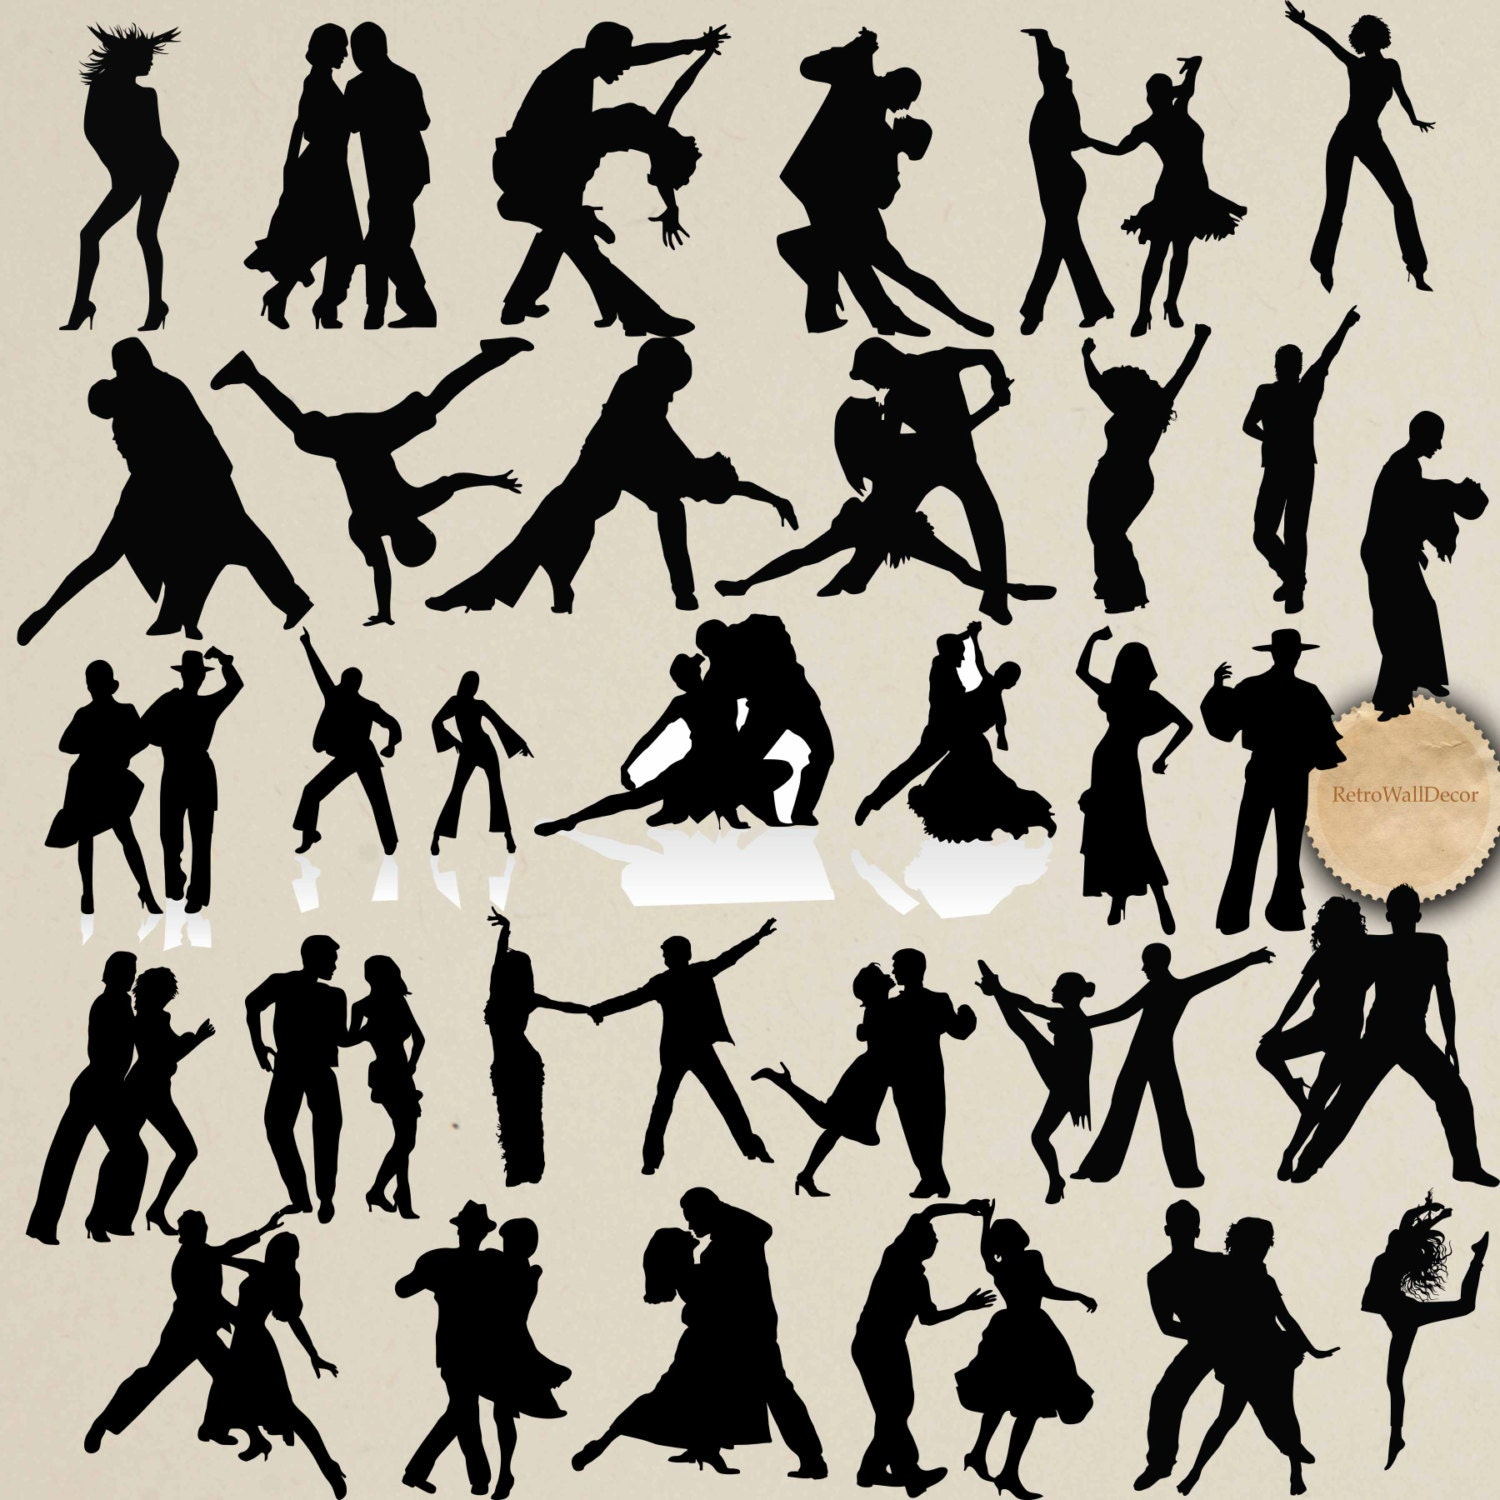 Dancing Silhouettes Dancing People Clip Art Couple Dance for Business People Silhouette Png  117dqh